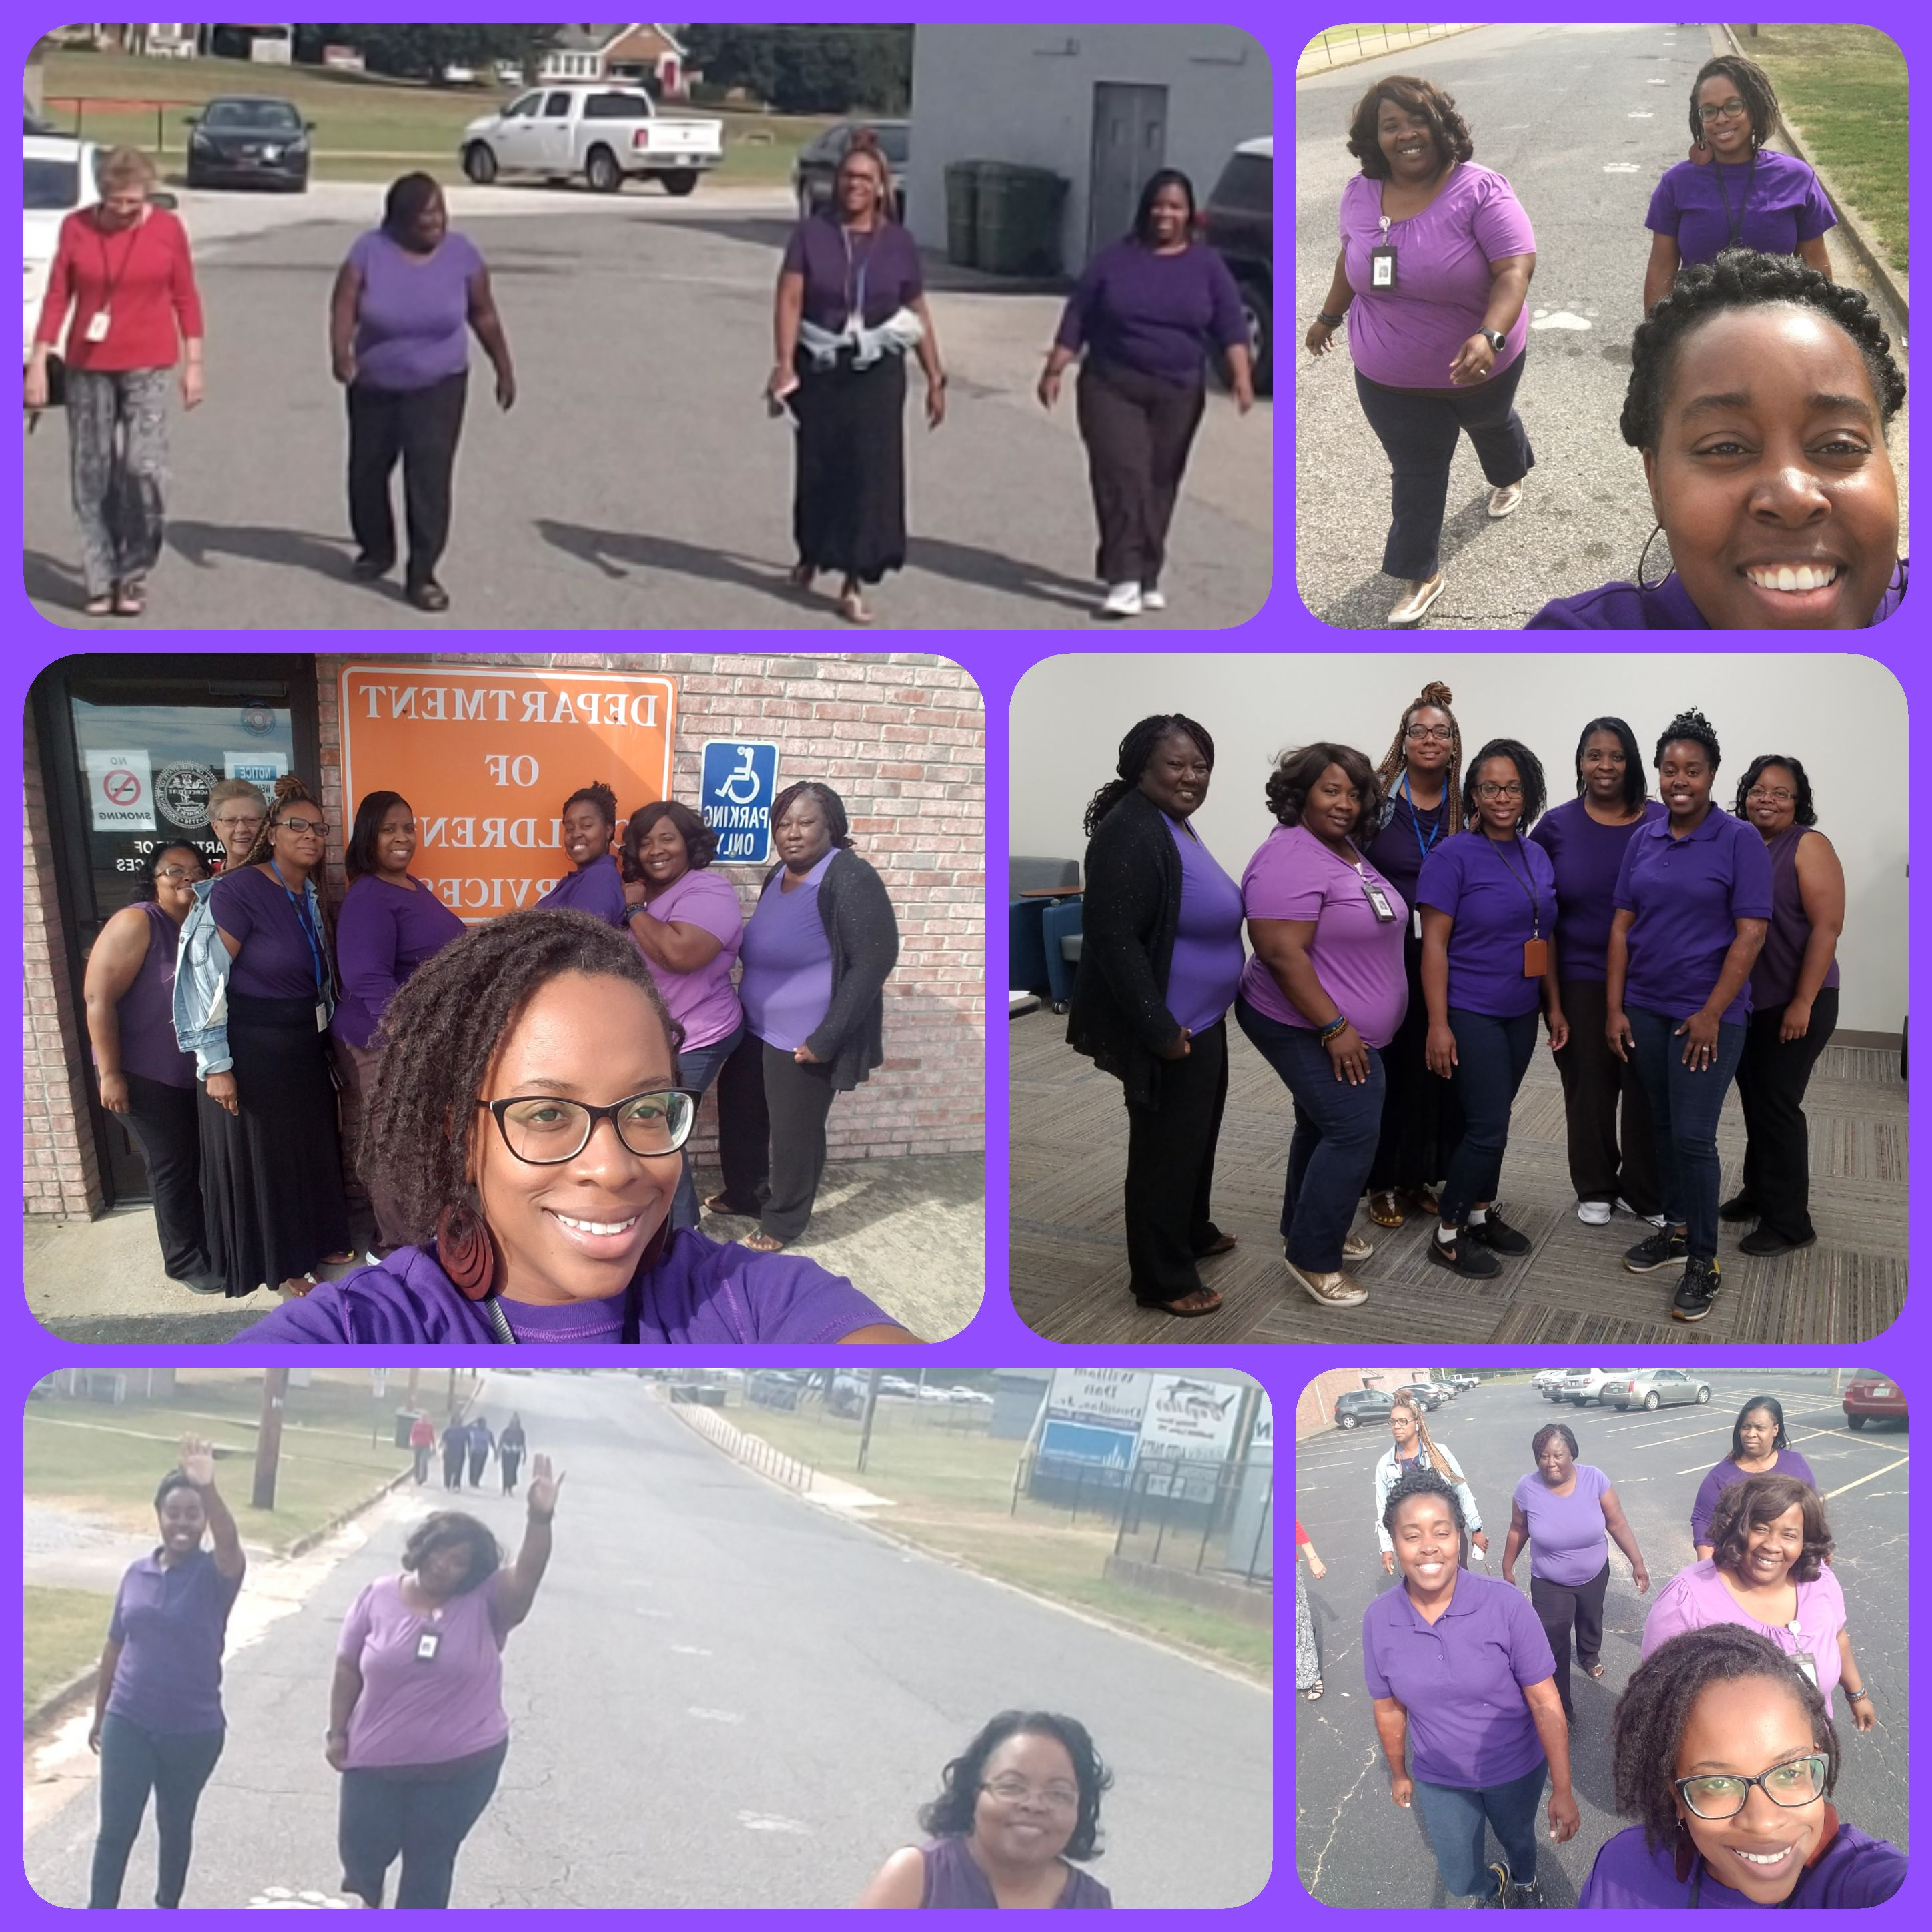 In recognition of National Women's Health & Fitness Day, DCS employees wore purple and took group walks!